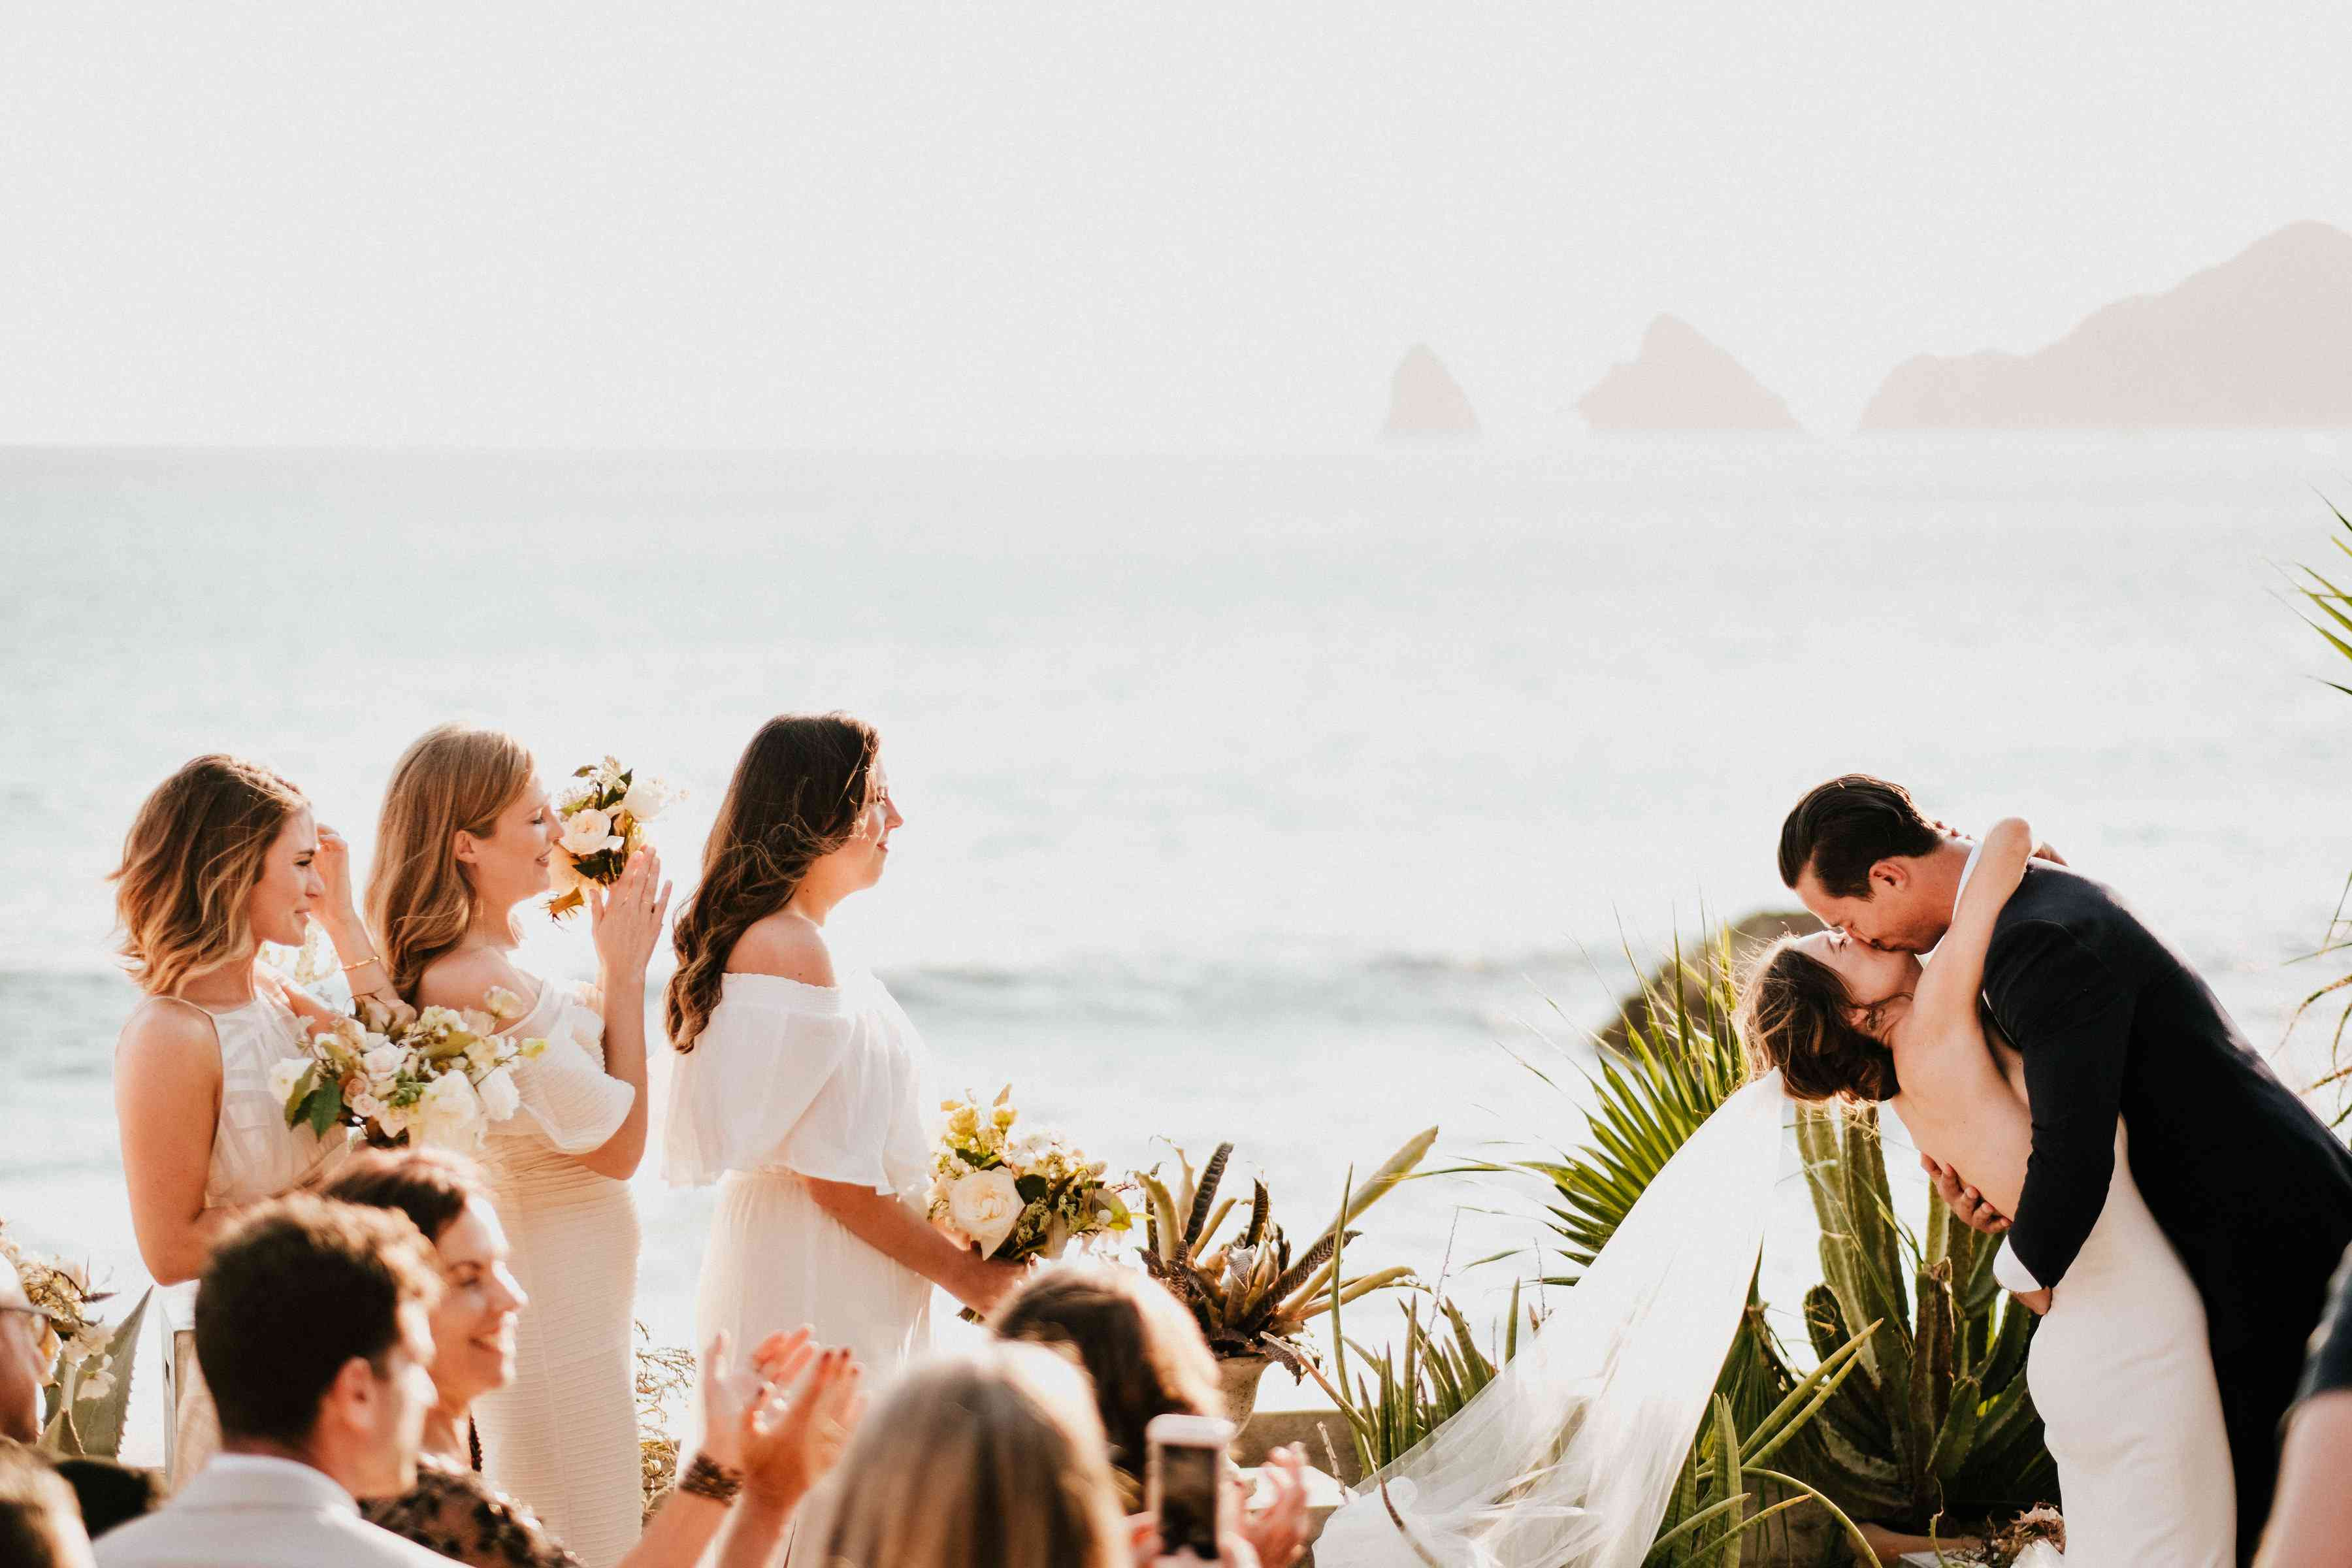 Bride and groom kissing during ceremony